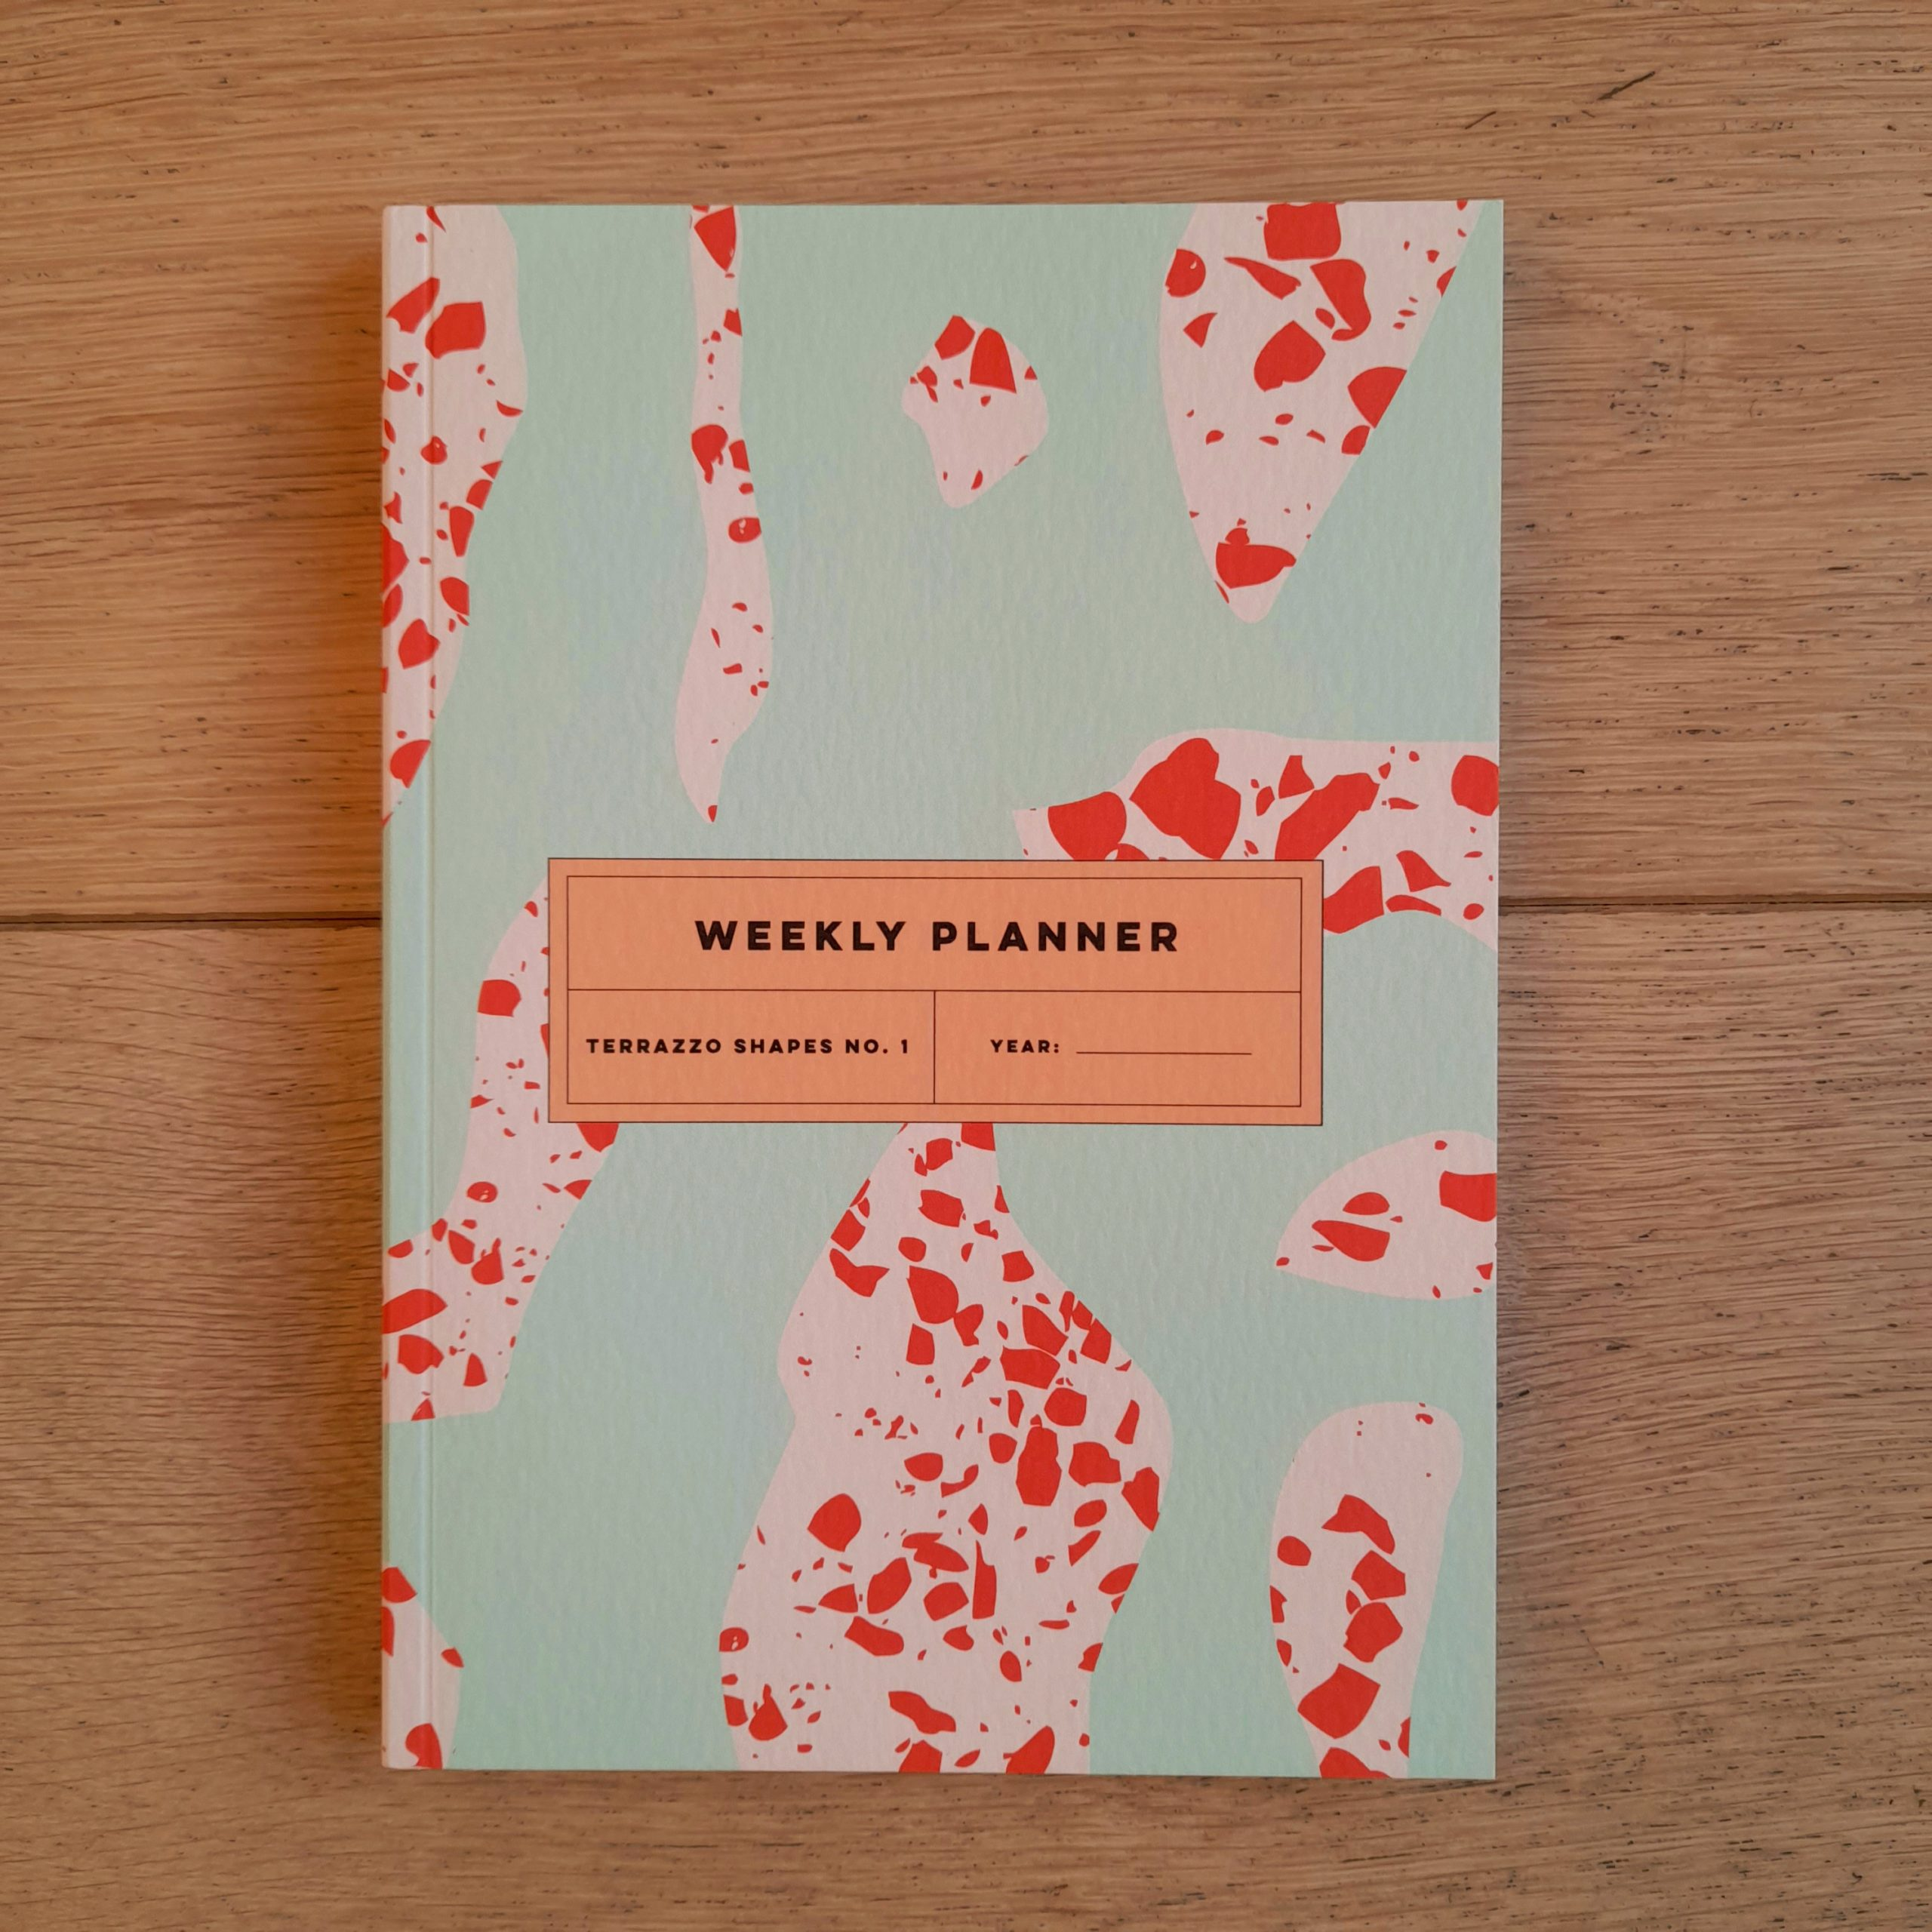 Terrazzo Shapes No.1 Weekly Planner Book